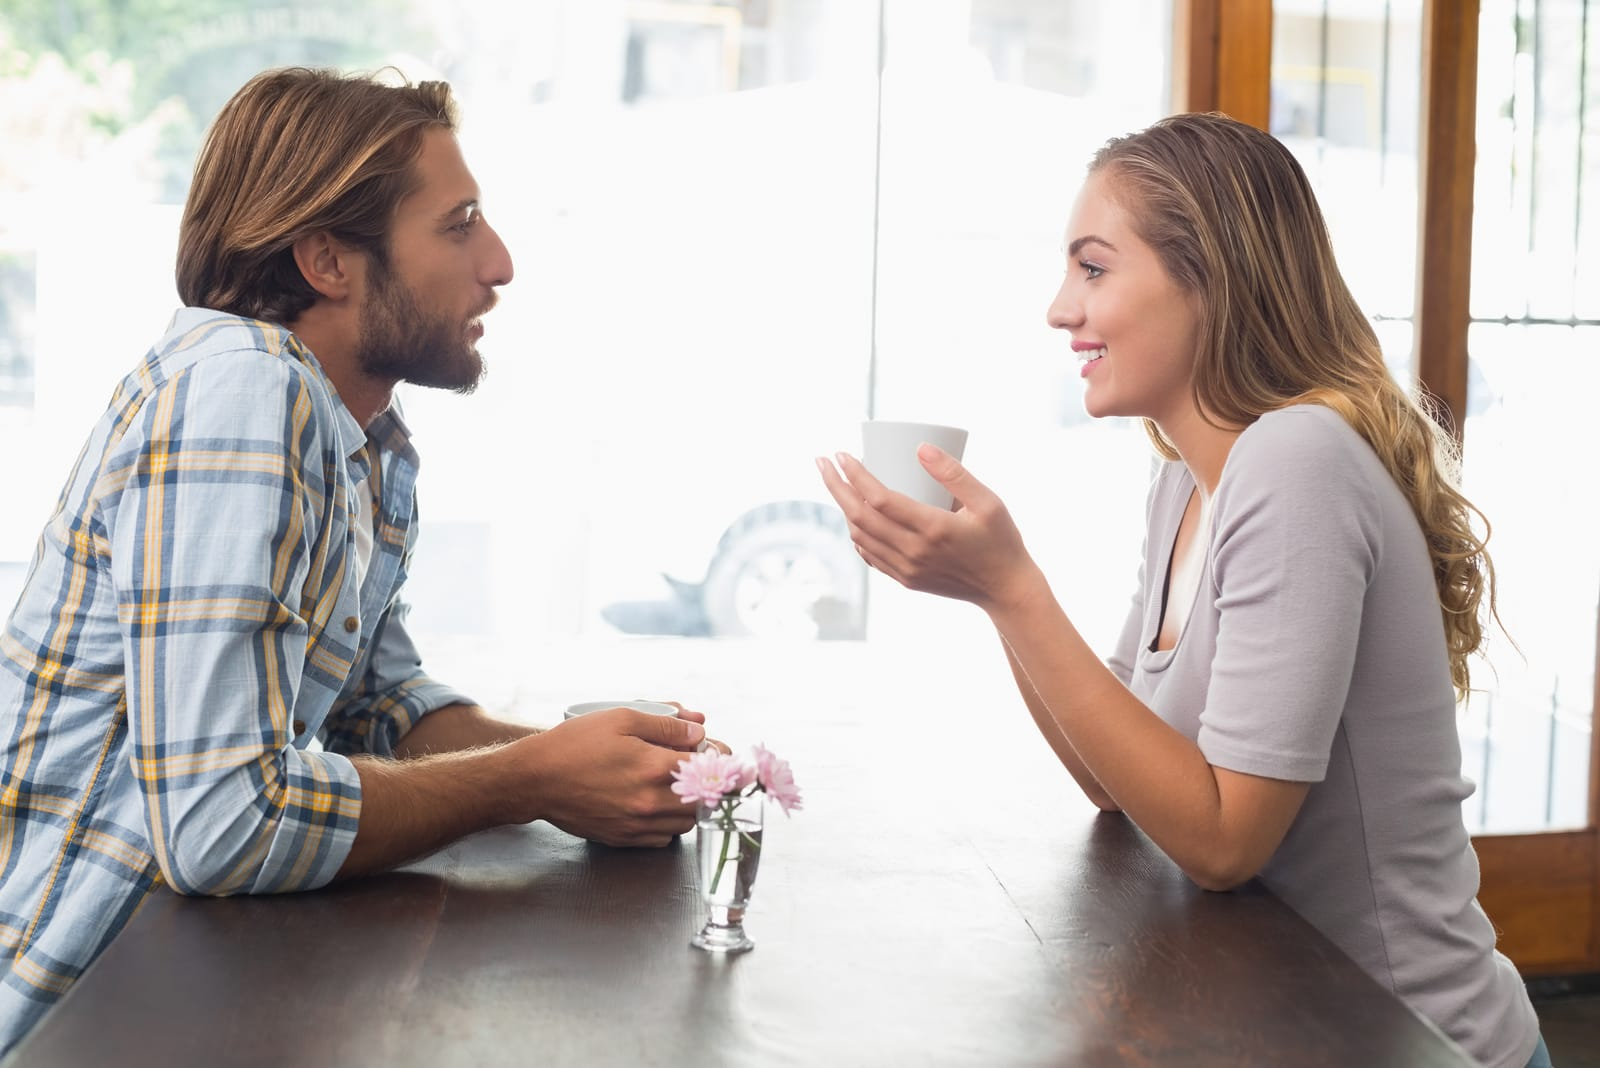 How To Get Someone To Like You Back: 20 Effective Ways To Success